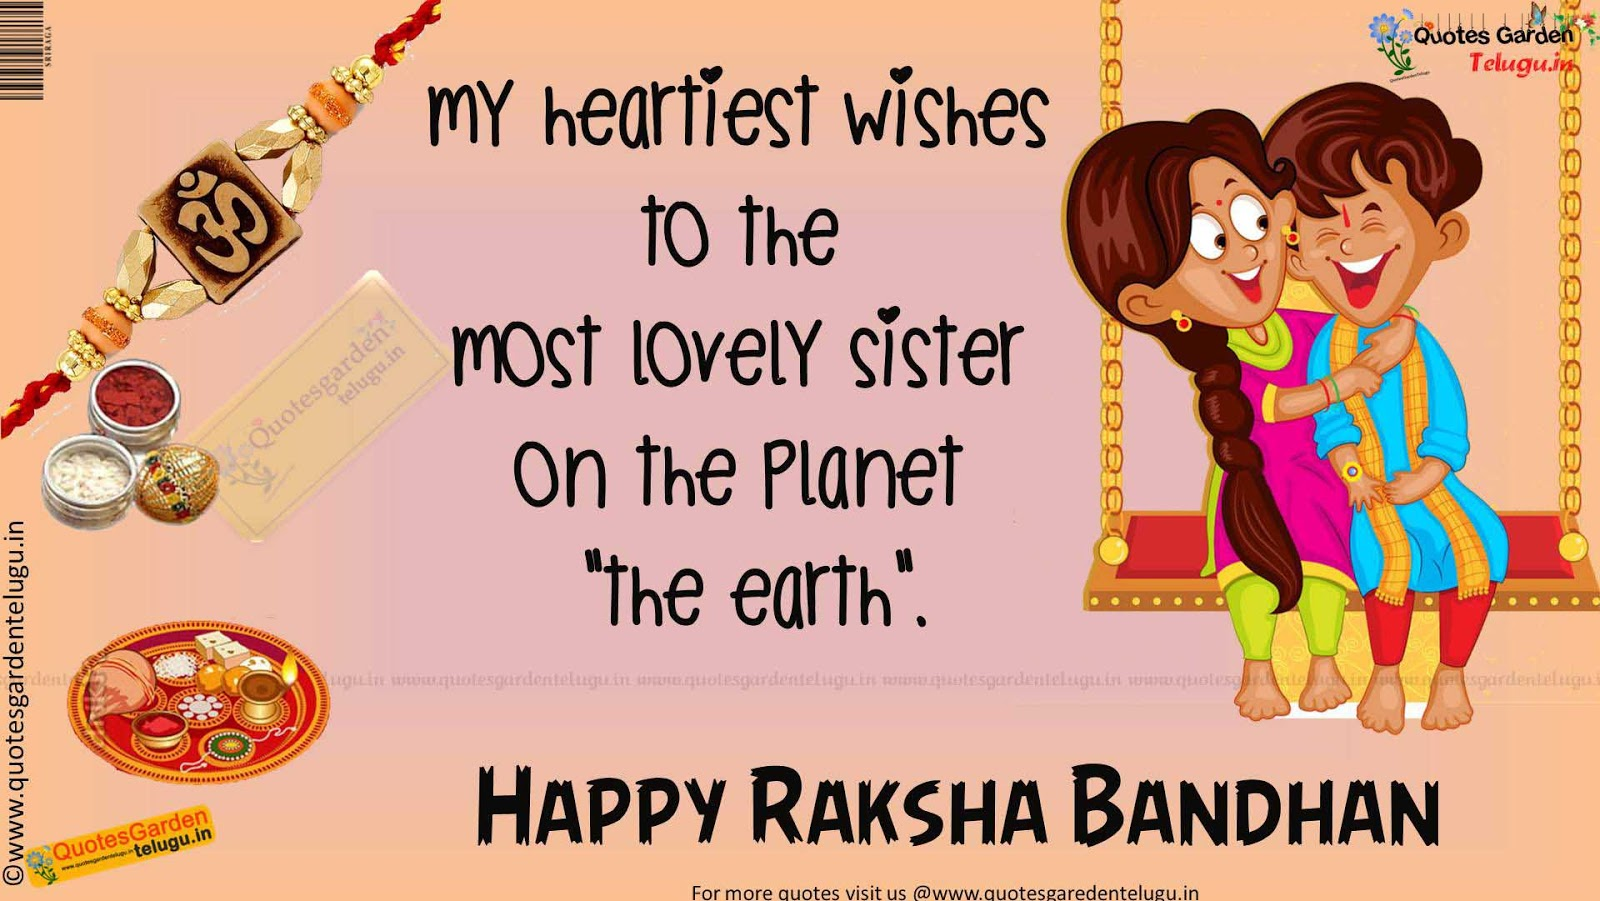 Best Rakshabandhan quotes for brothers 899 | QUOTES GARDEN ...